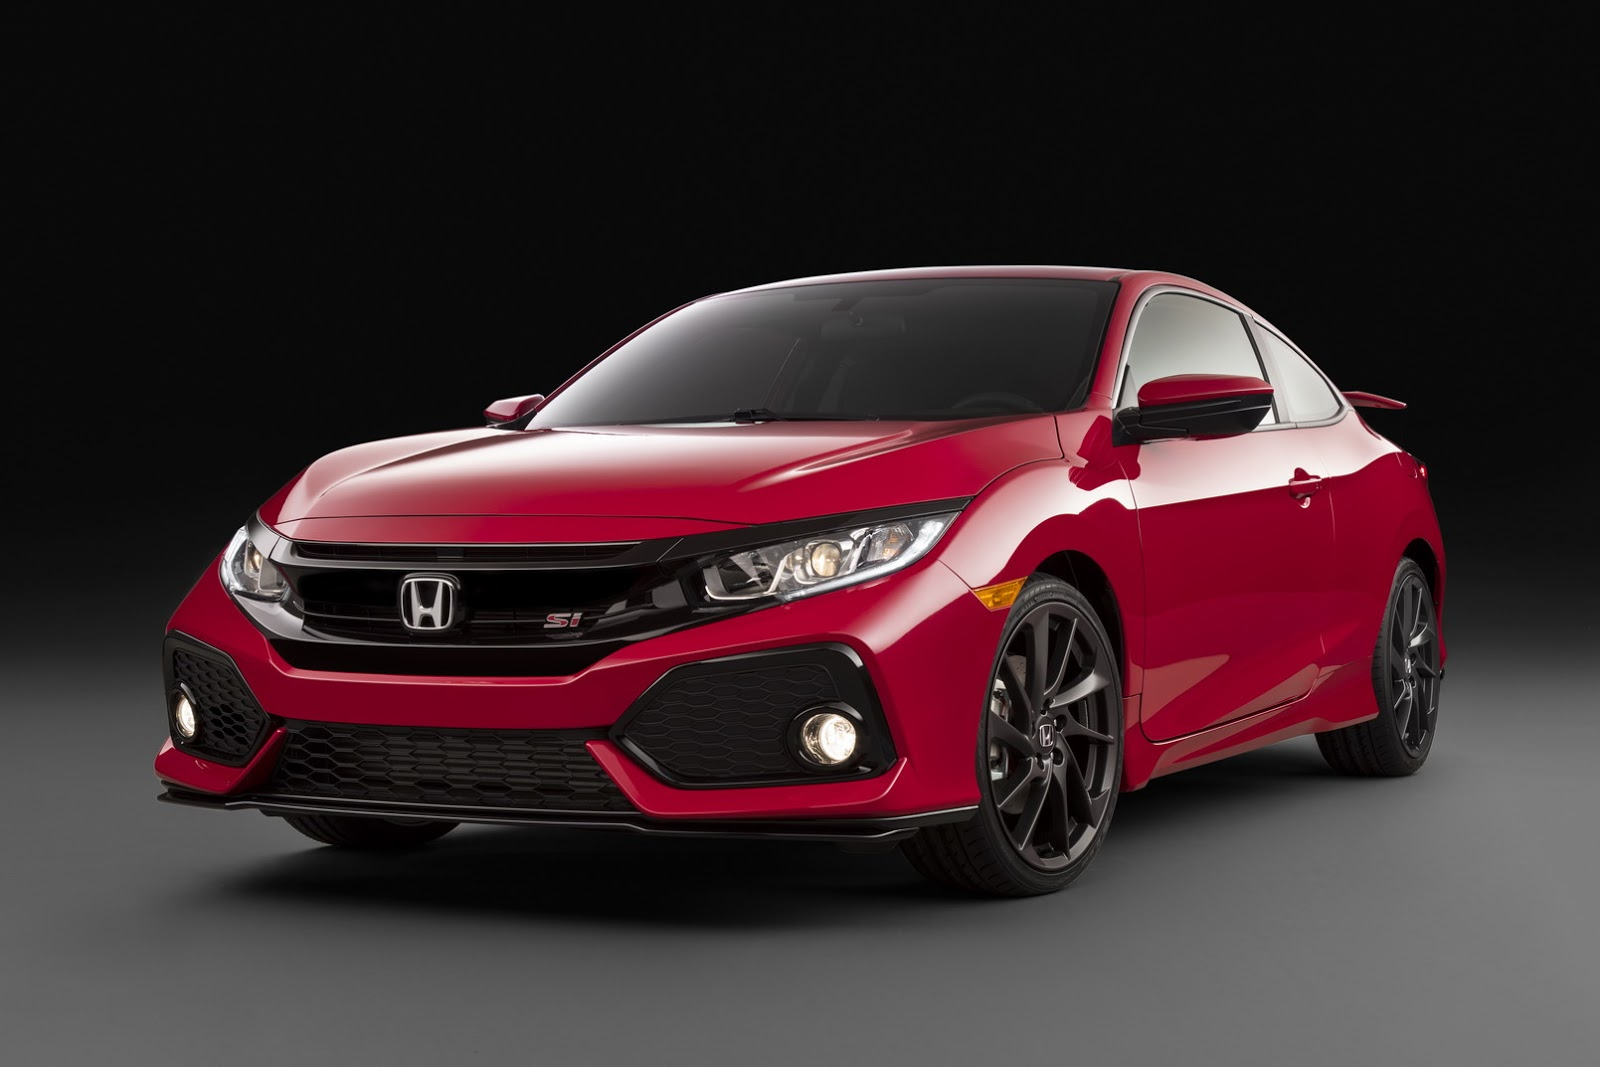 Honda Civic Si 2017 (2)